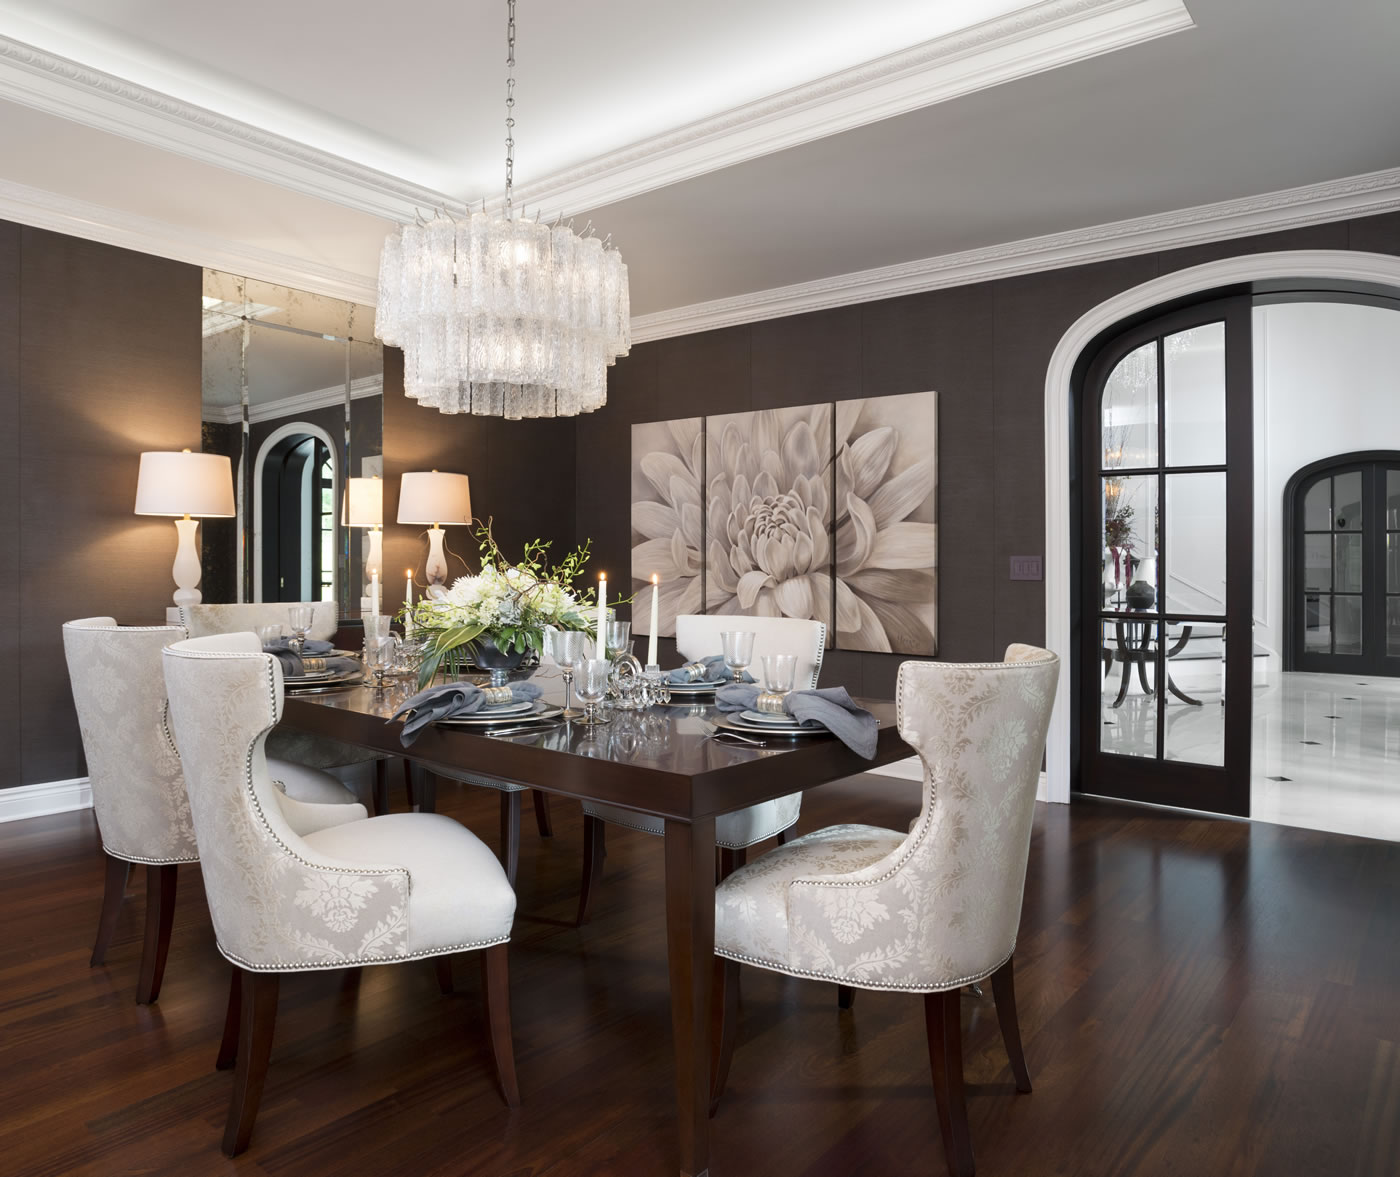 Designer Interior: Tutto Interiors, A Michigan Interior Design Firm, Receives